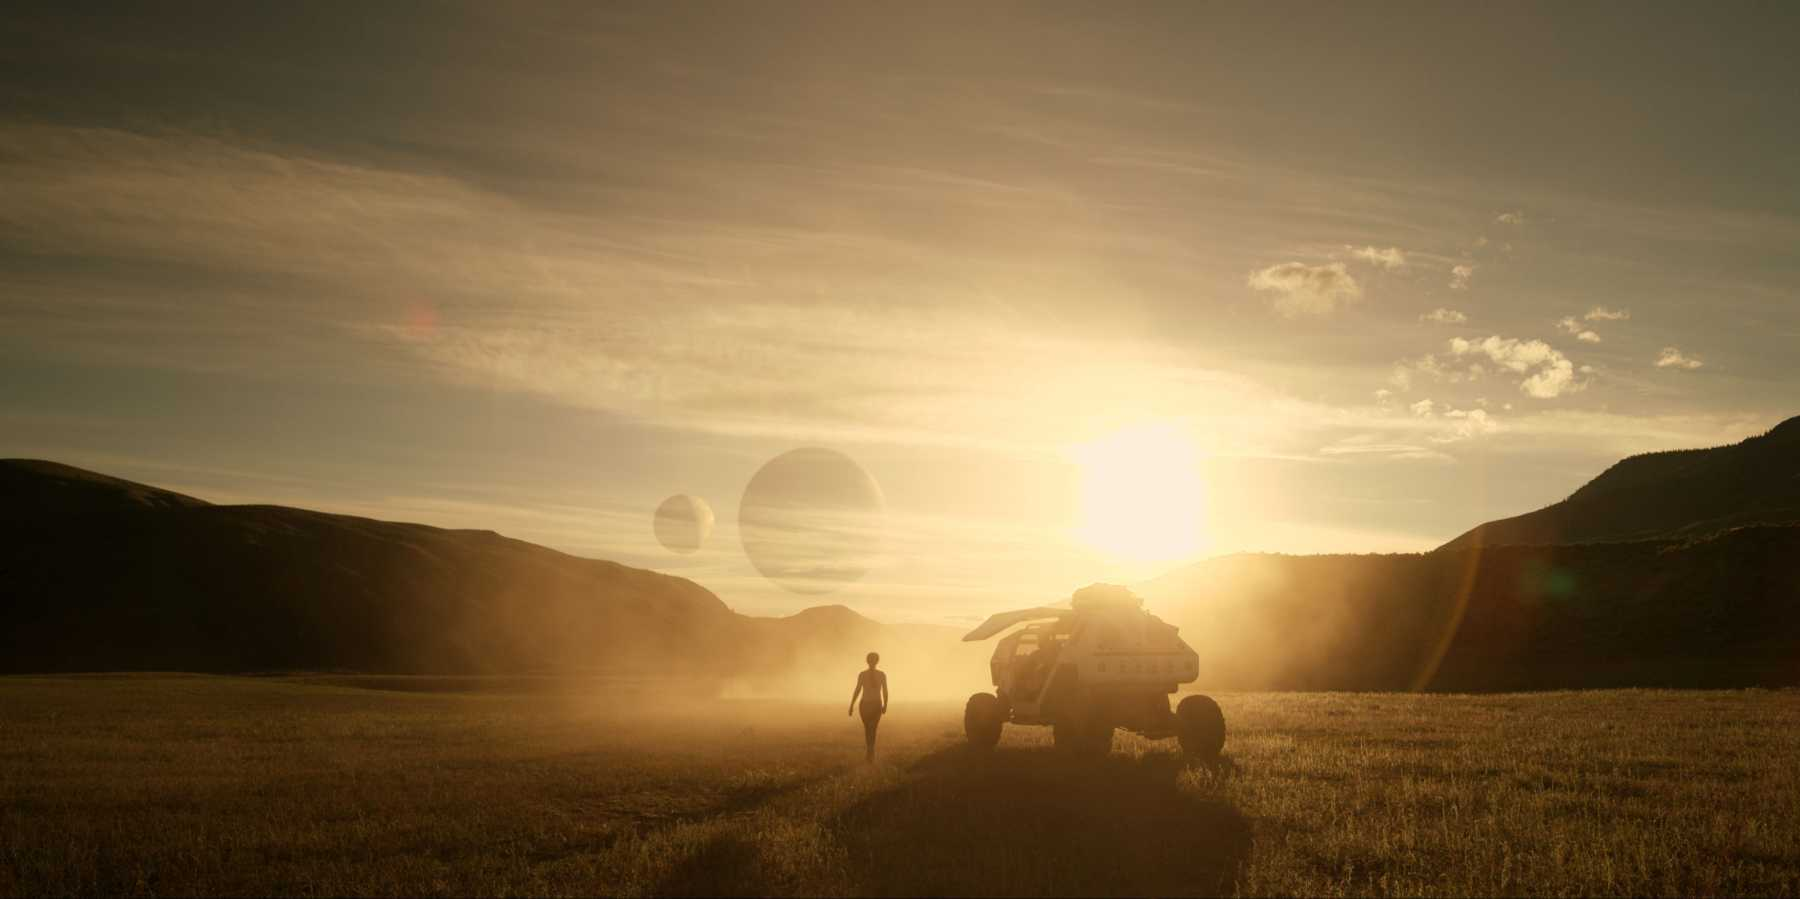 Netflix Releases Trailer for New Lost In Space Reboot | Lost in Space